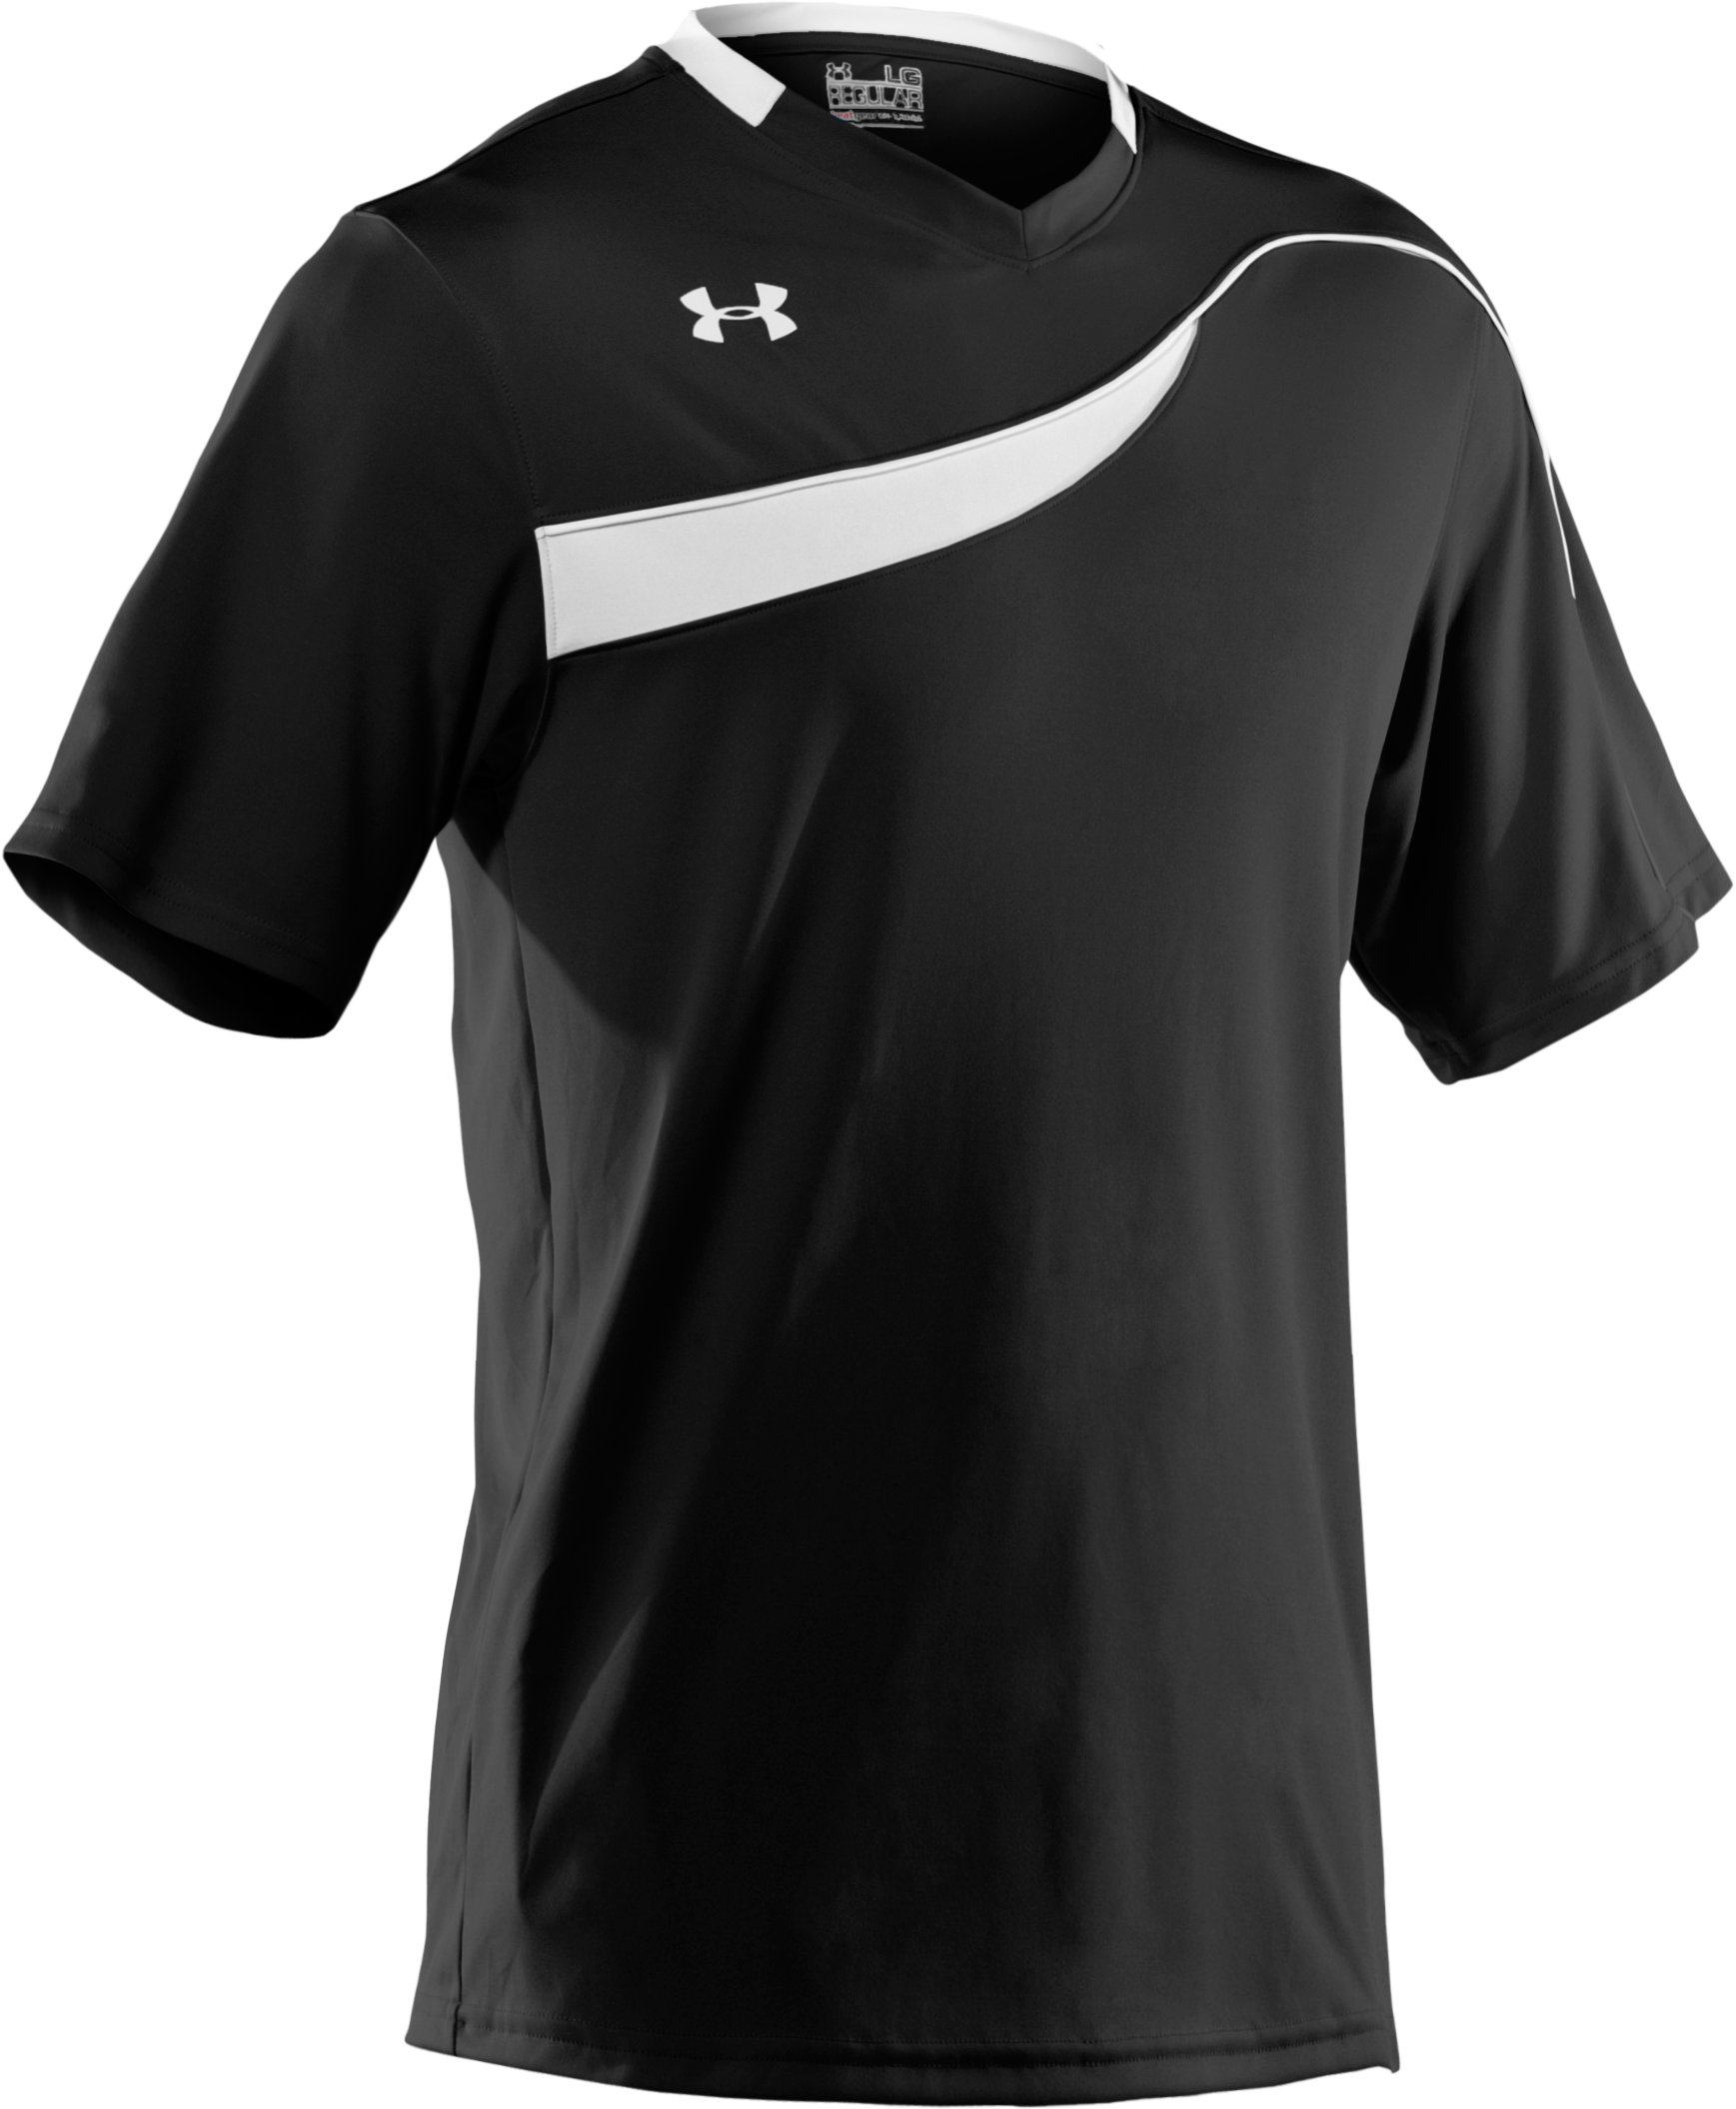 Men's UA Chaos Short Sleeve Soccer Jersey, Black , undefined